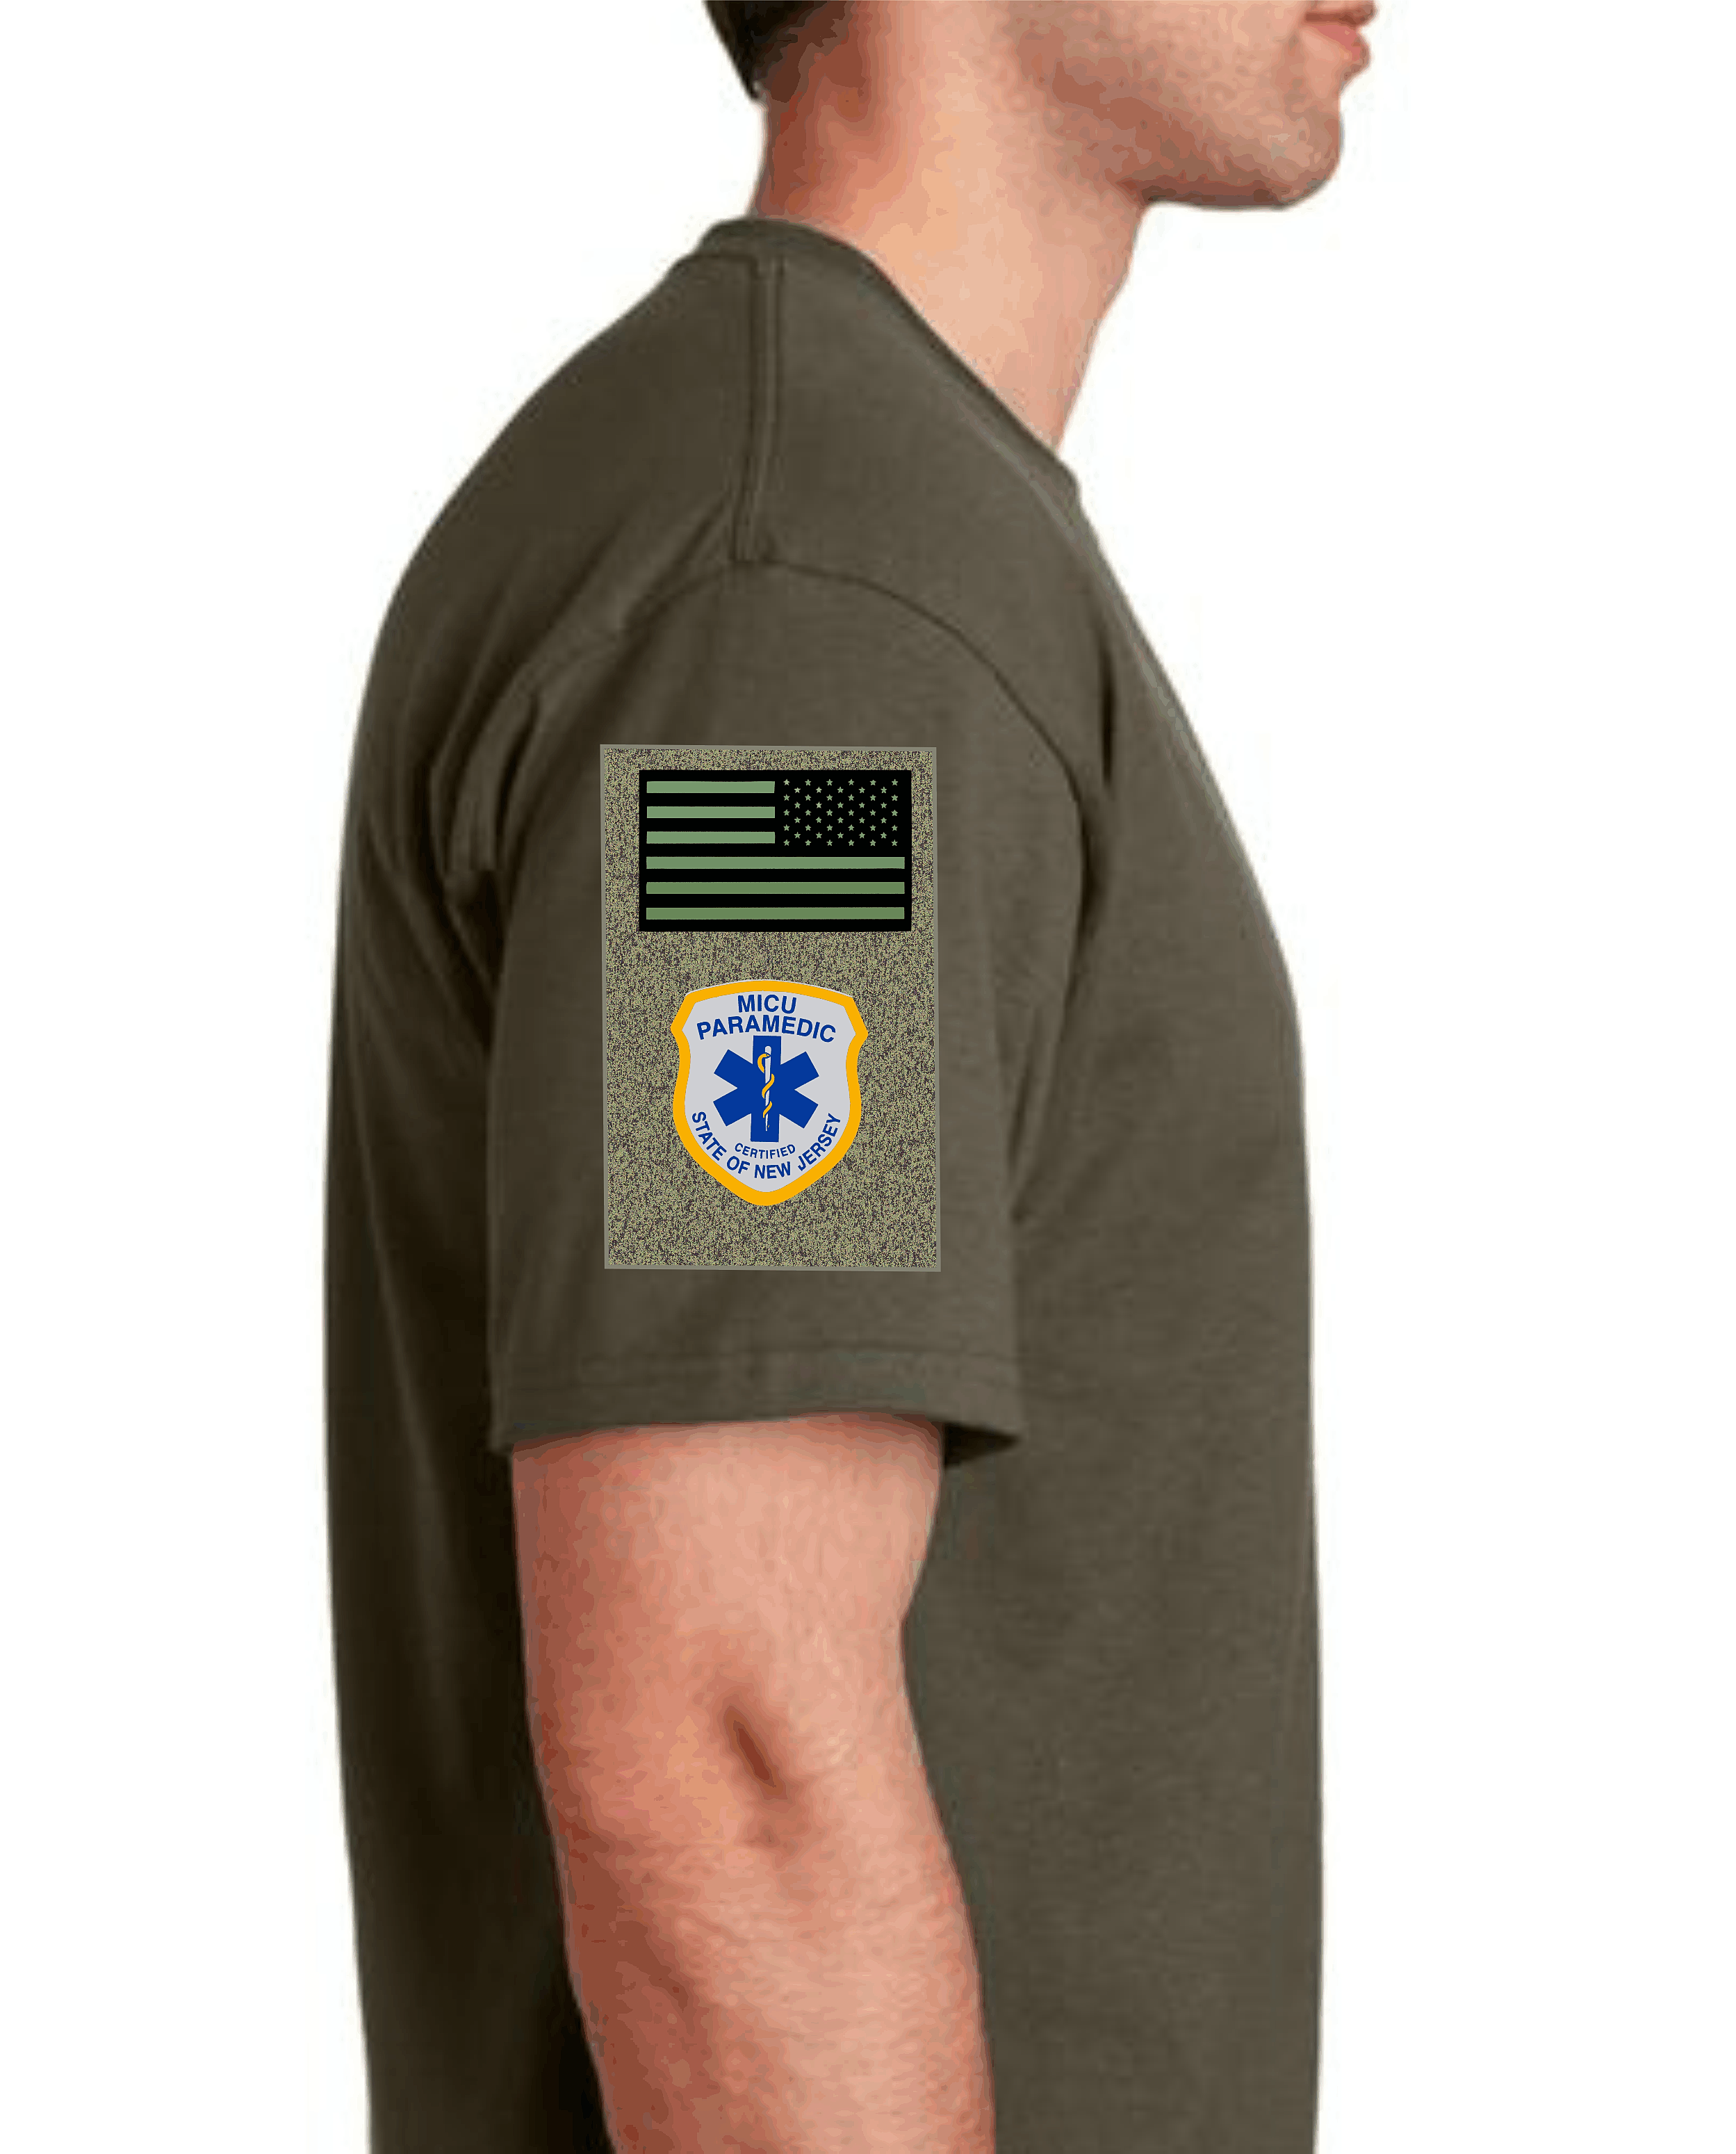 Tactical T-Shirts and Airsoft T-Shirts, Tactitee - the ultimate ...